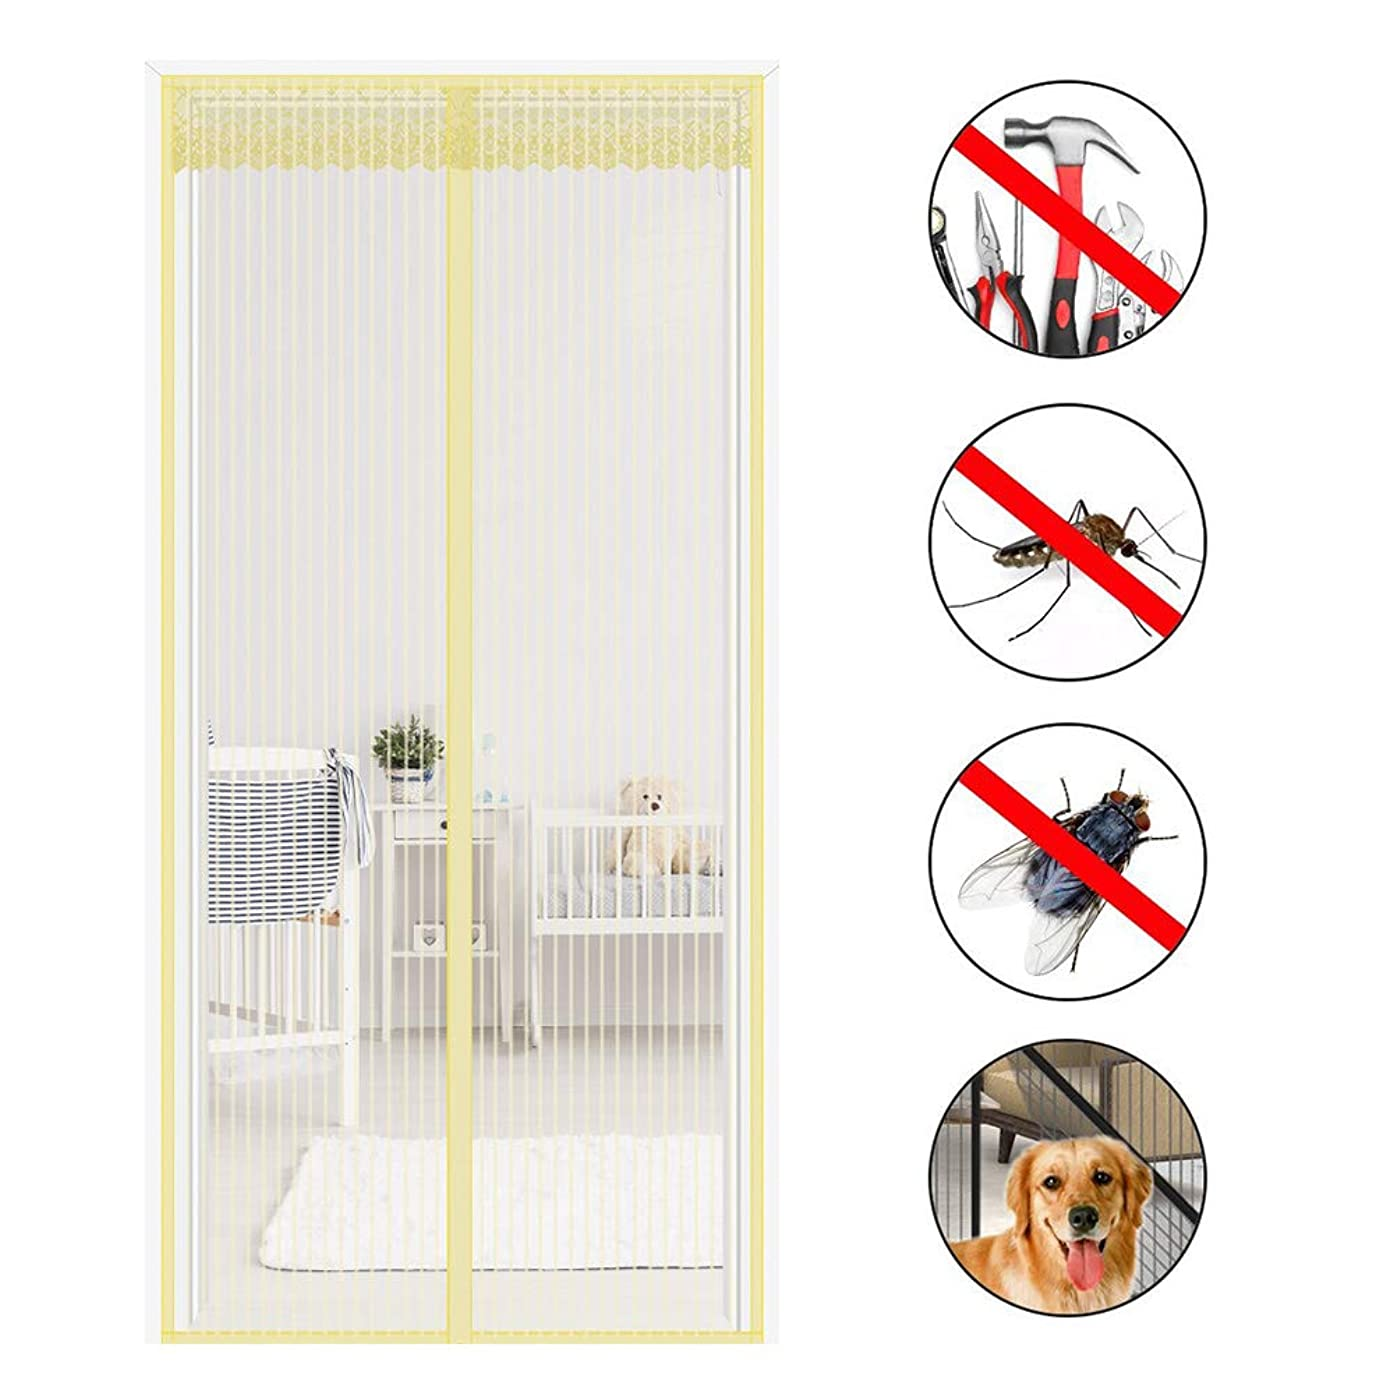 MLECA Automatic Closing Mosquito Patio Screens,for Insect Magnetic Screen Door with Heavy Duty Full Frame Velcro French Double Door Insect Screen Mesh,95220cm